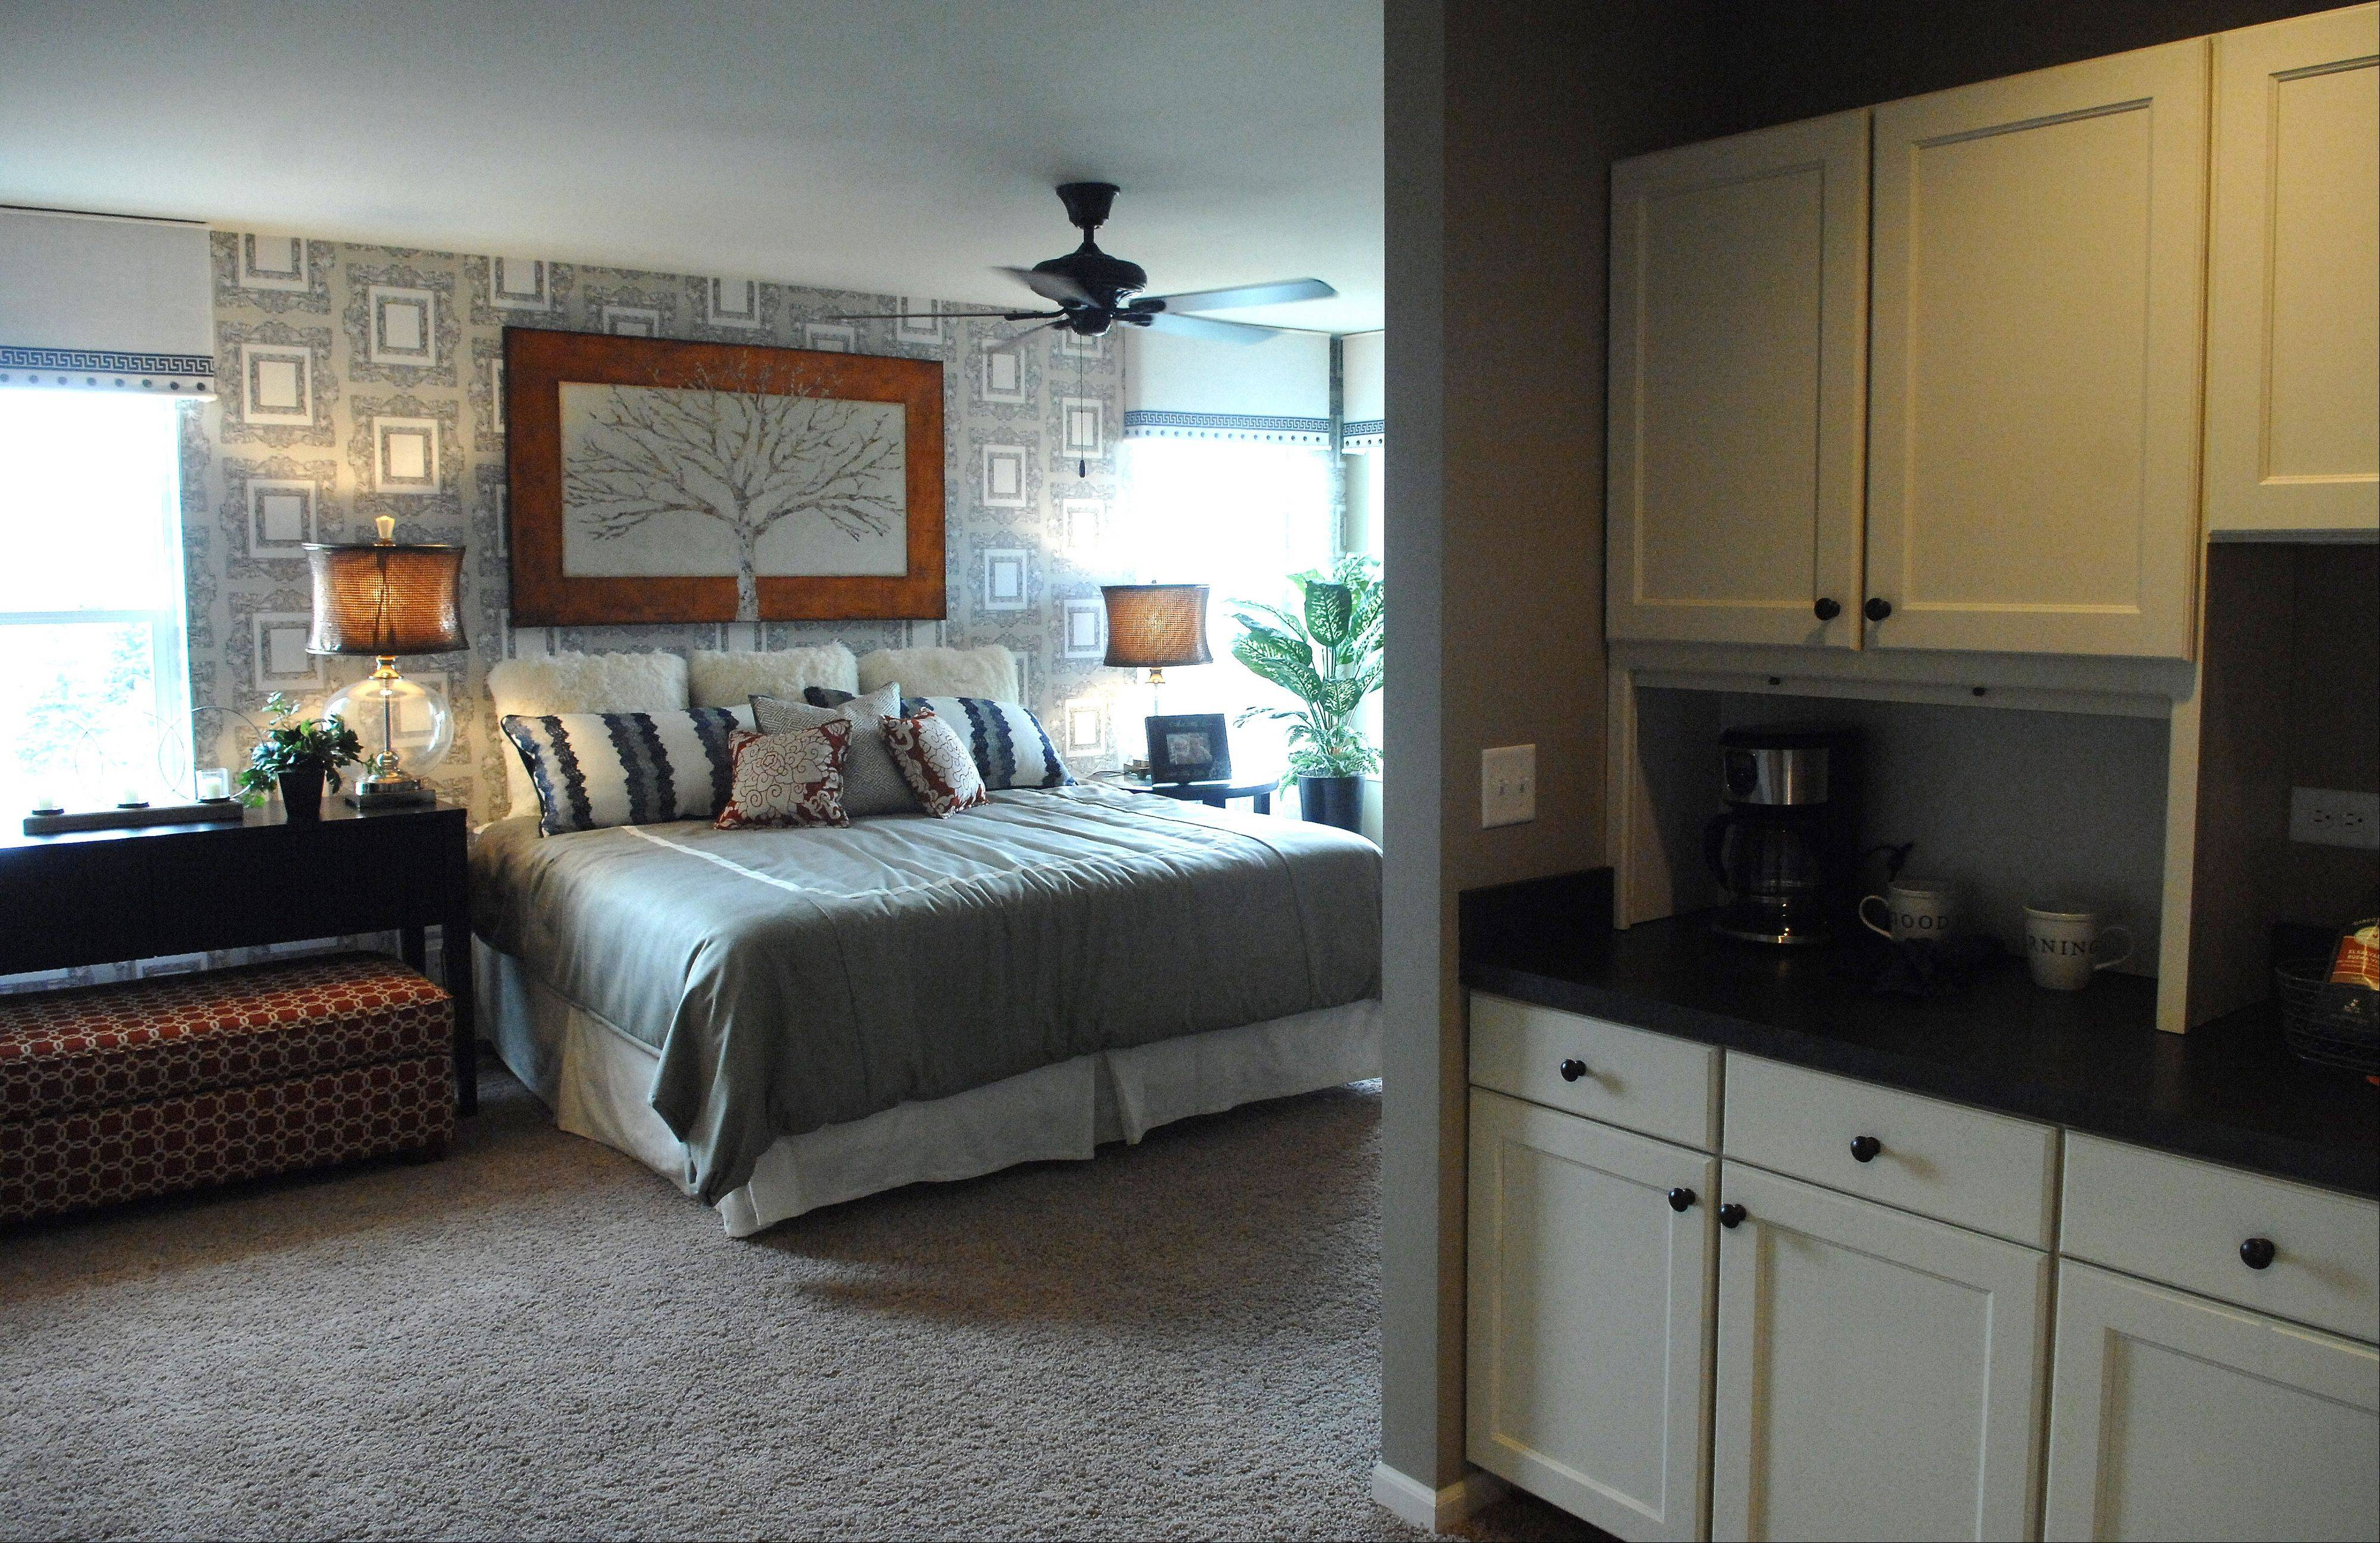 A coffee bar and cabinets make up an enclave in the master suite of the decorated model.